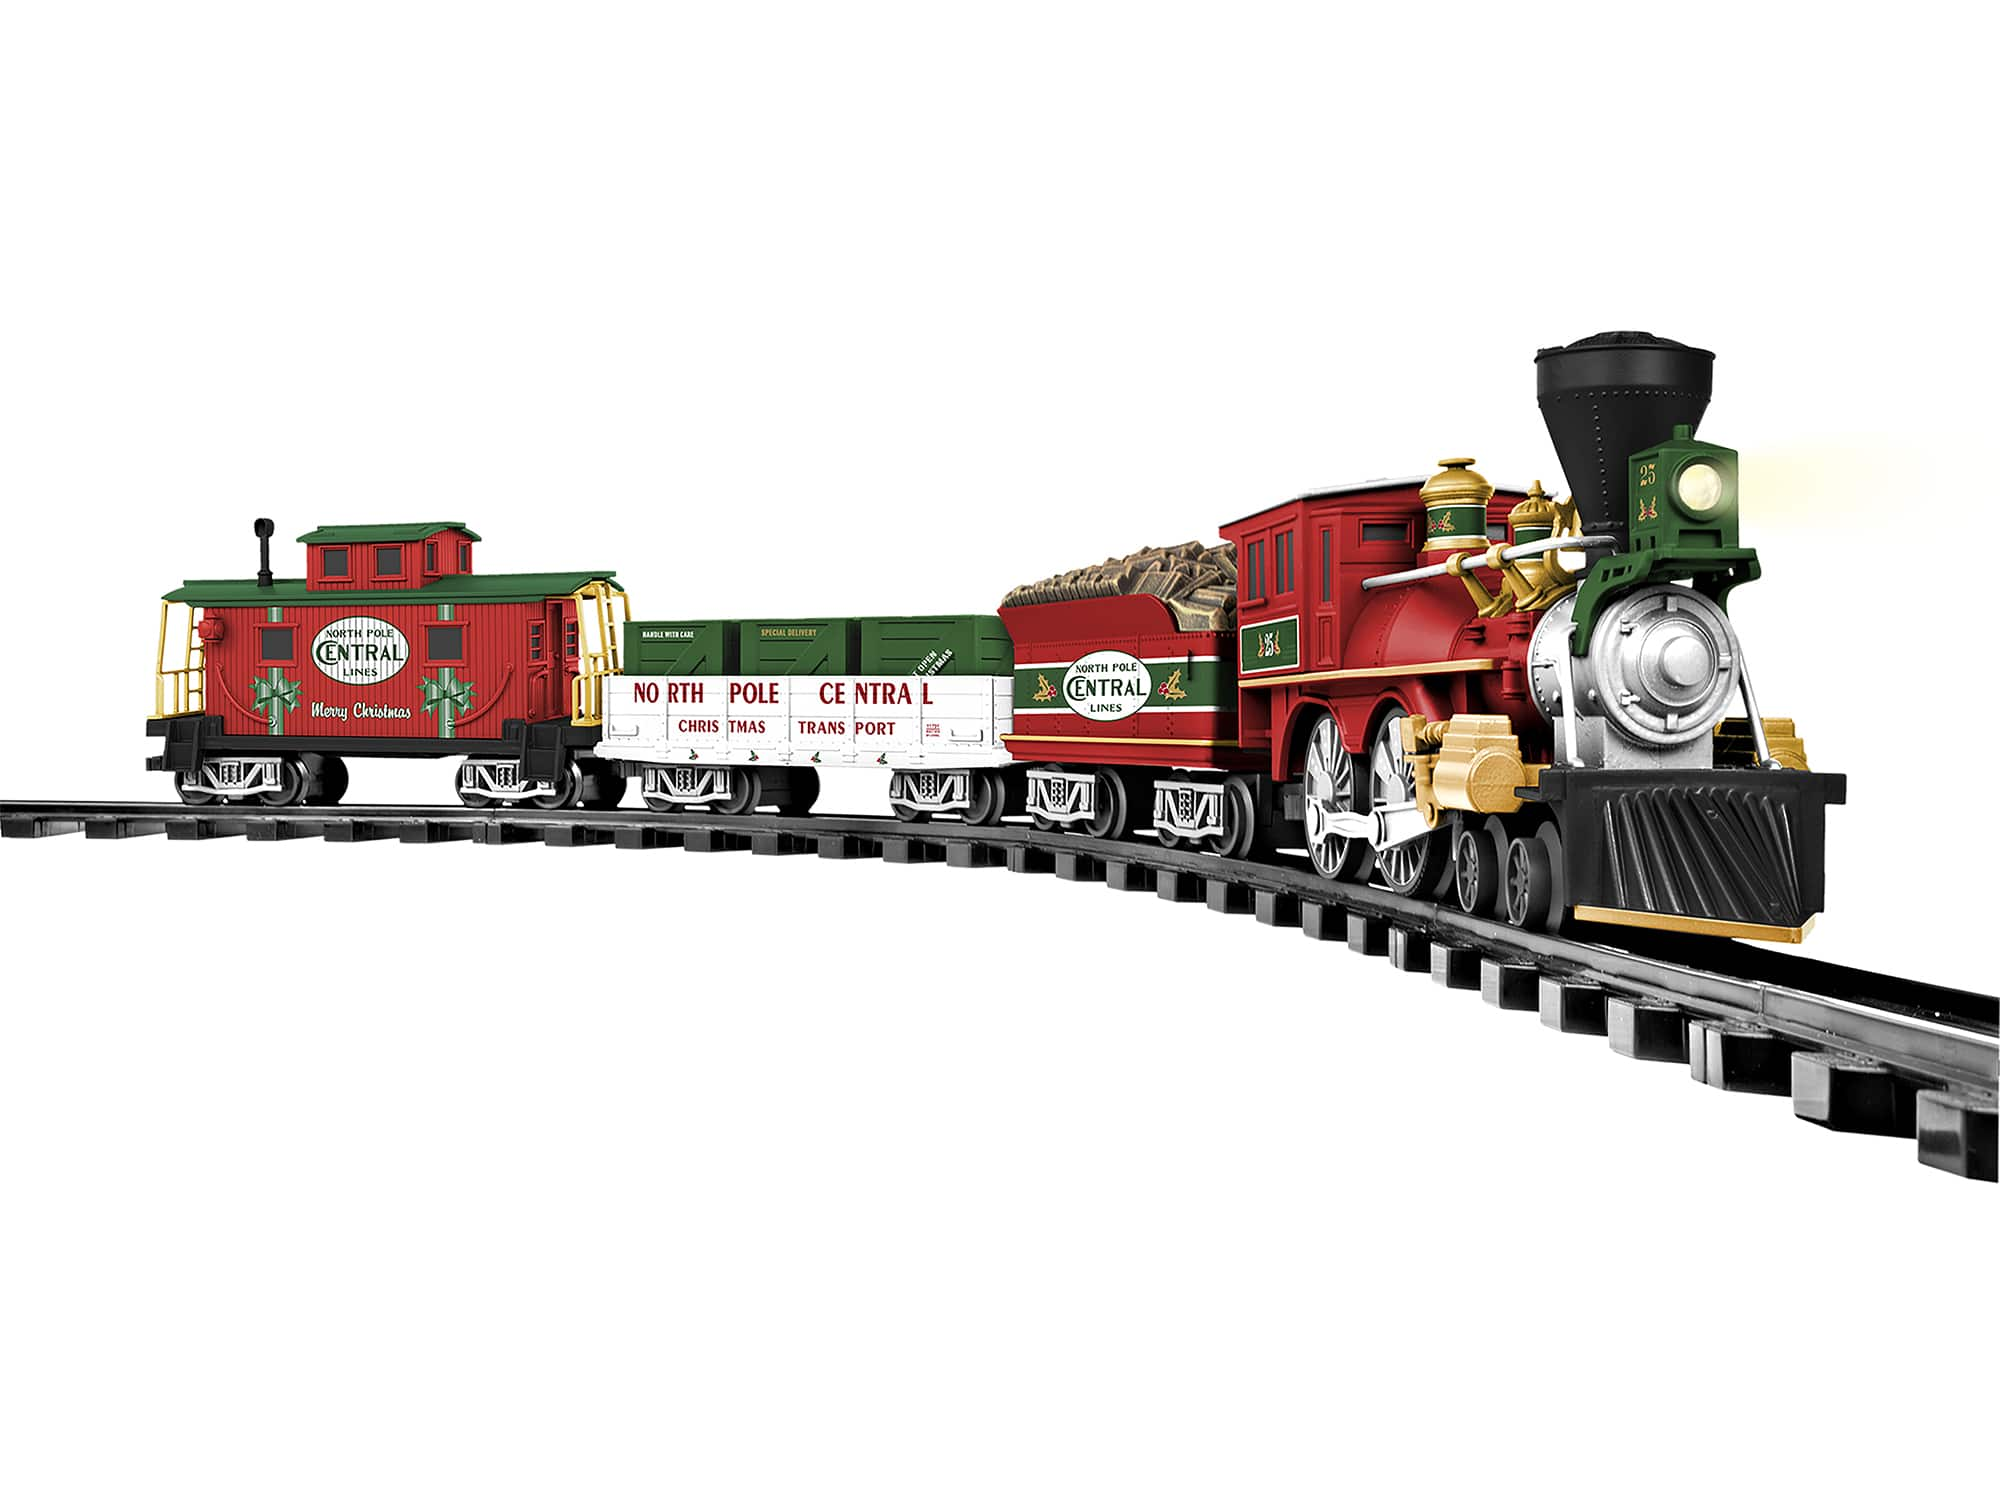 Lionel North Pole Central Train Set Ready to Play w/ Remote - Costco Members only - in Store - YMMV $59.99